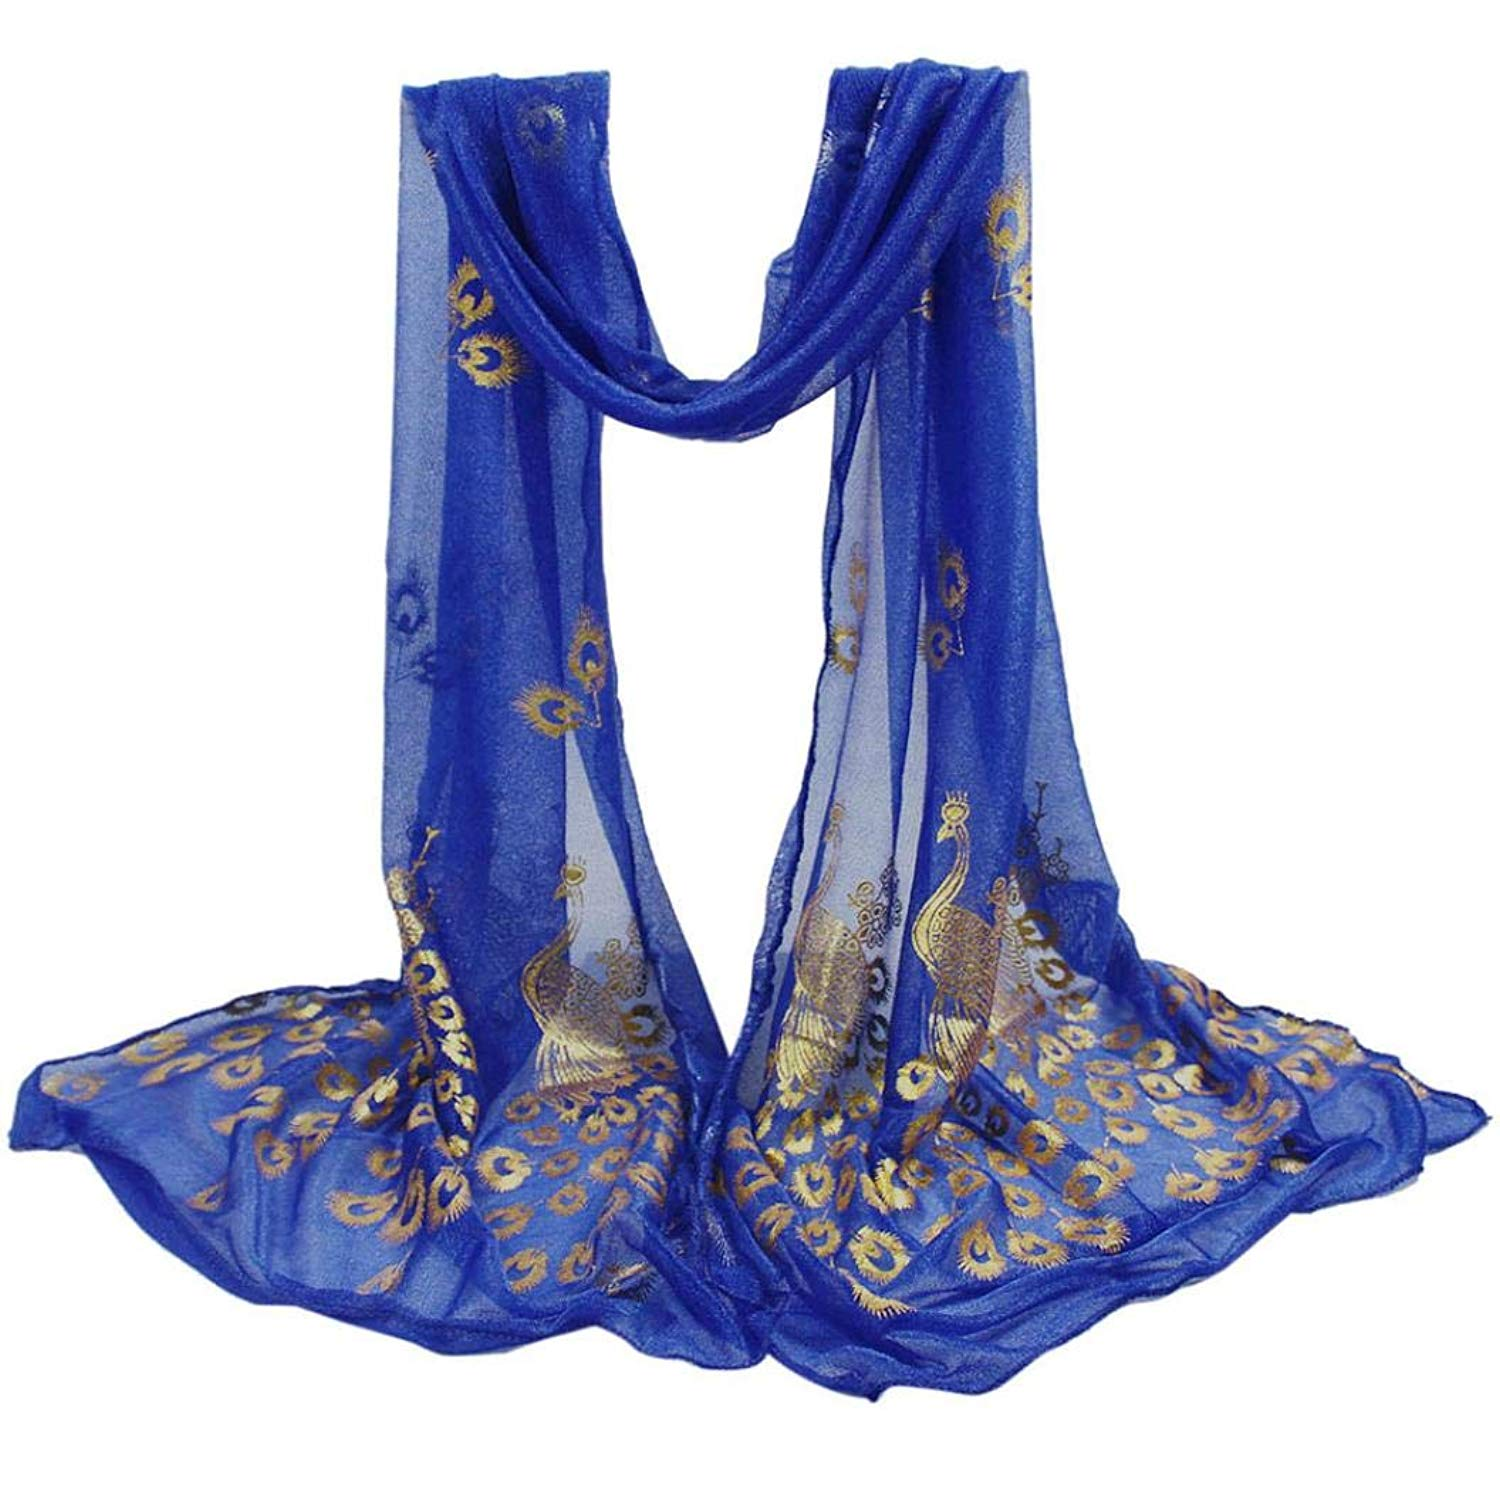 Fashion Scarvers, Shybuy Unique Women's Lightweight Sheer Scarves Ladies Peacock Printed Scarf